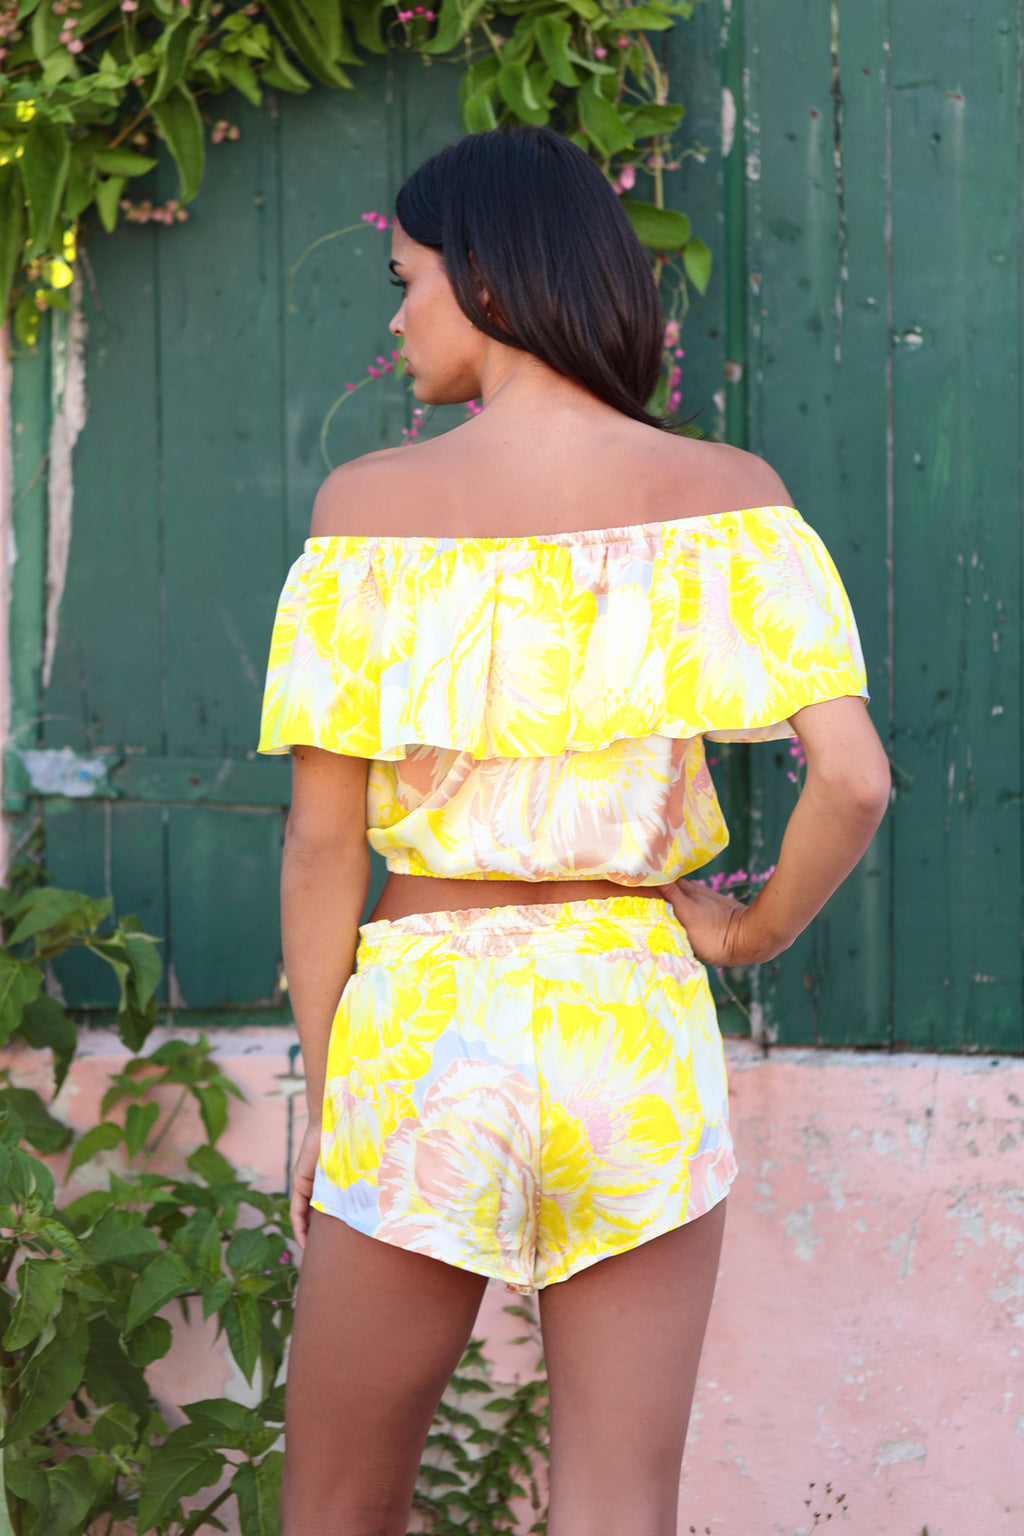 Crop Top in Lemom Love You print: bright yellow background with soft blush and white flower pattern.